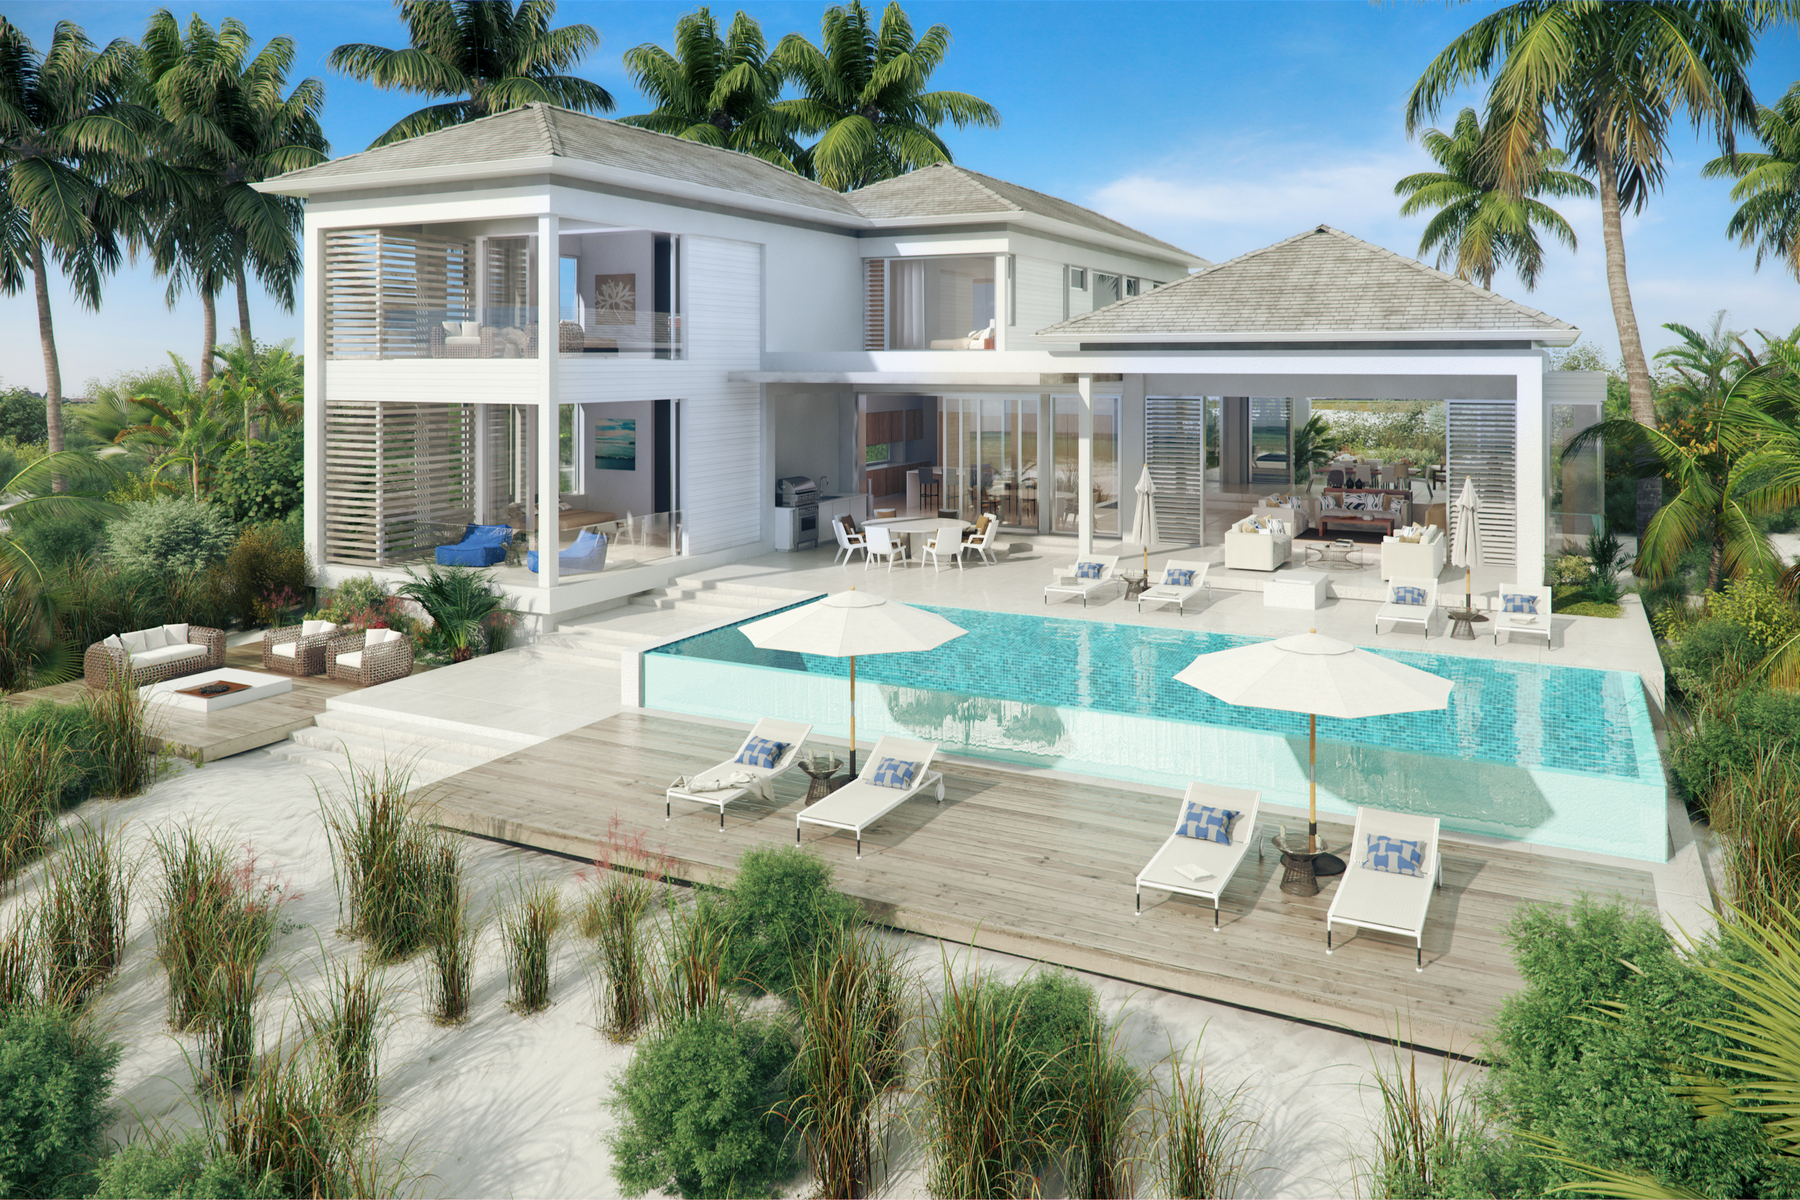 Single Family Home for Sale at BEACH ENCLAVE GRACE BAY Design A Beachfront Grace Bay, TKCA 1ZZ Turks And Caicos Islands